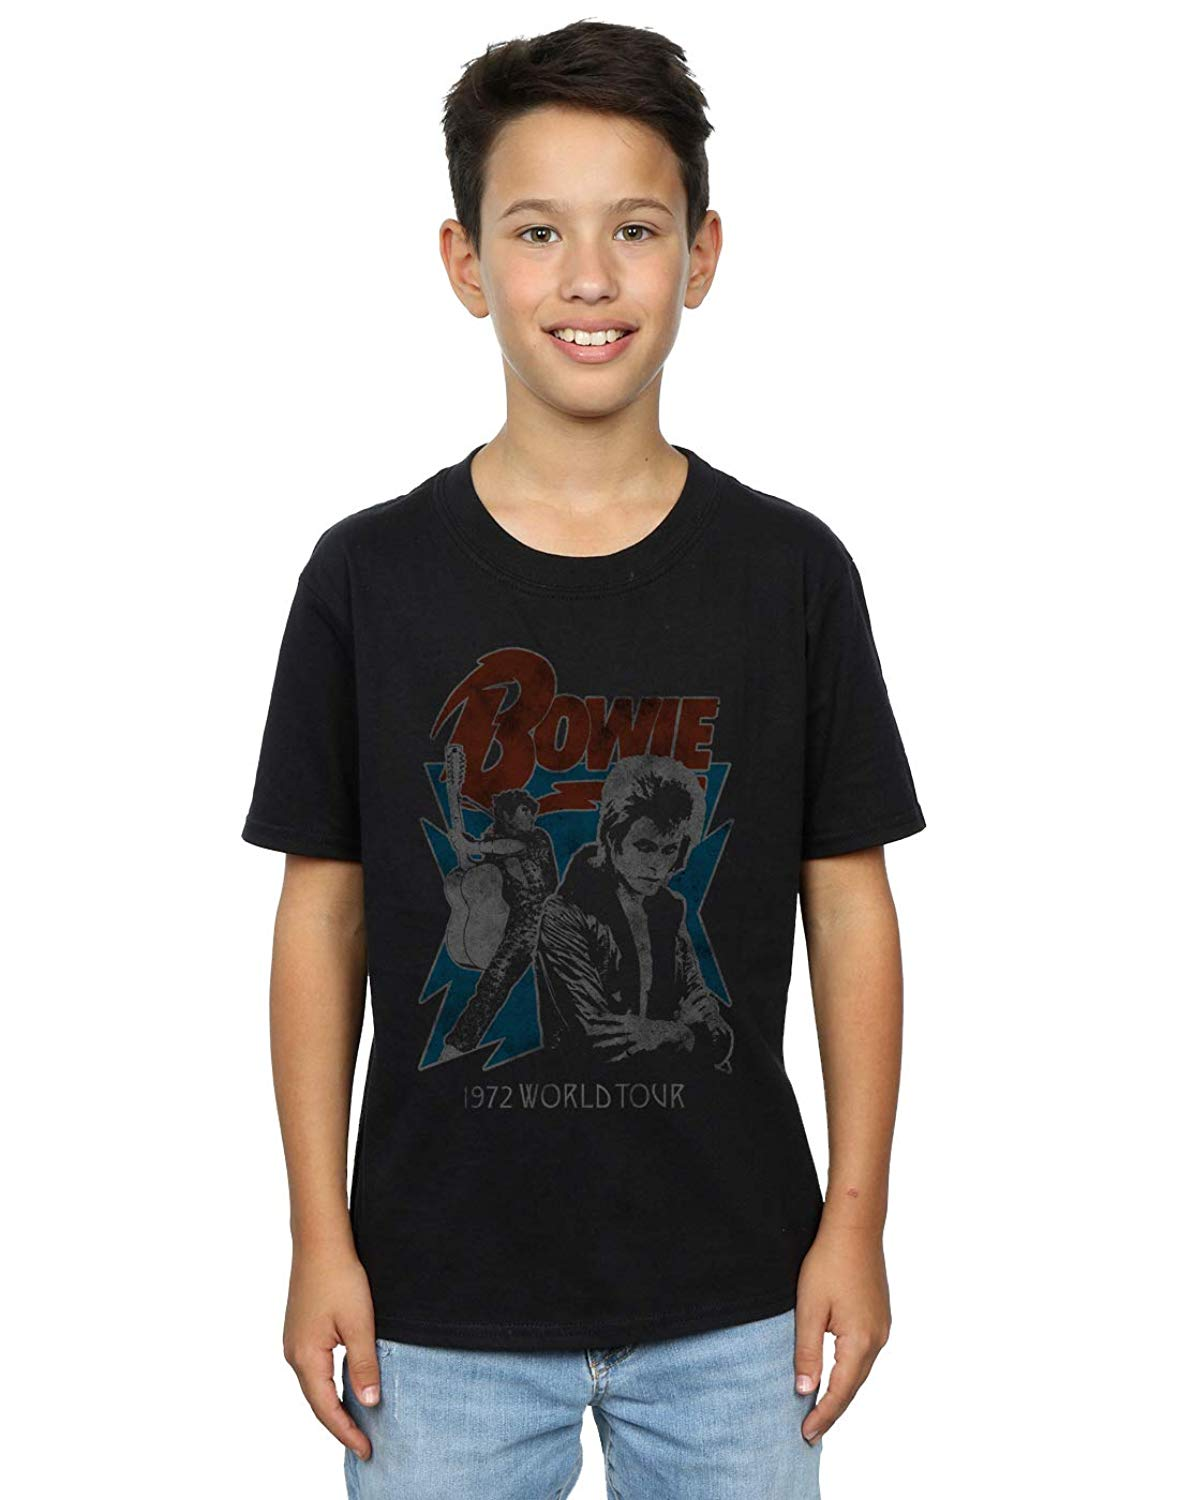 David Bowie LOGO Vintage Style Licensed Adult T-Shirt All Sizes